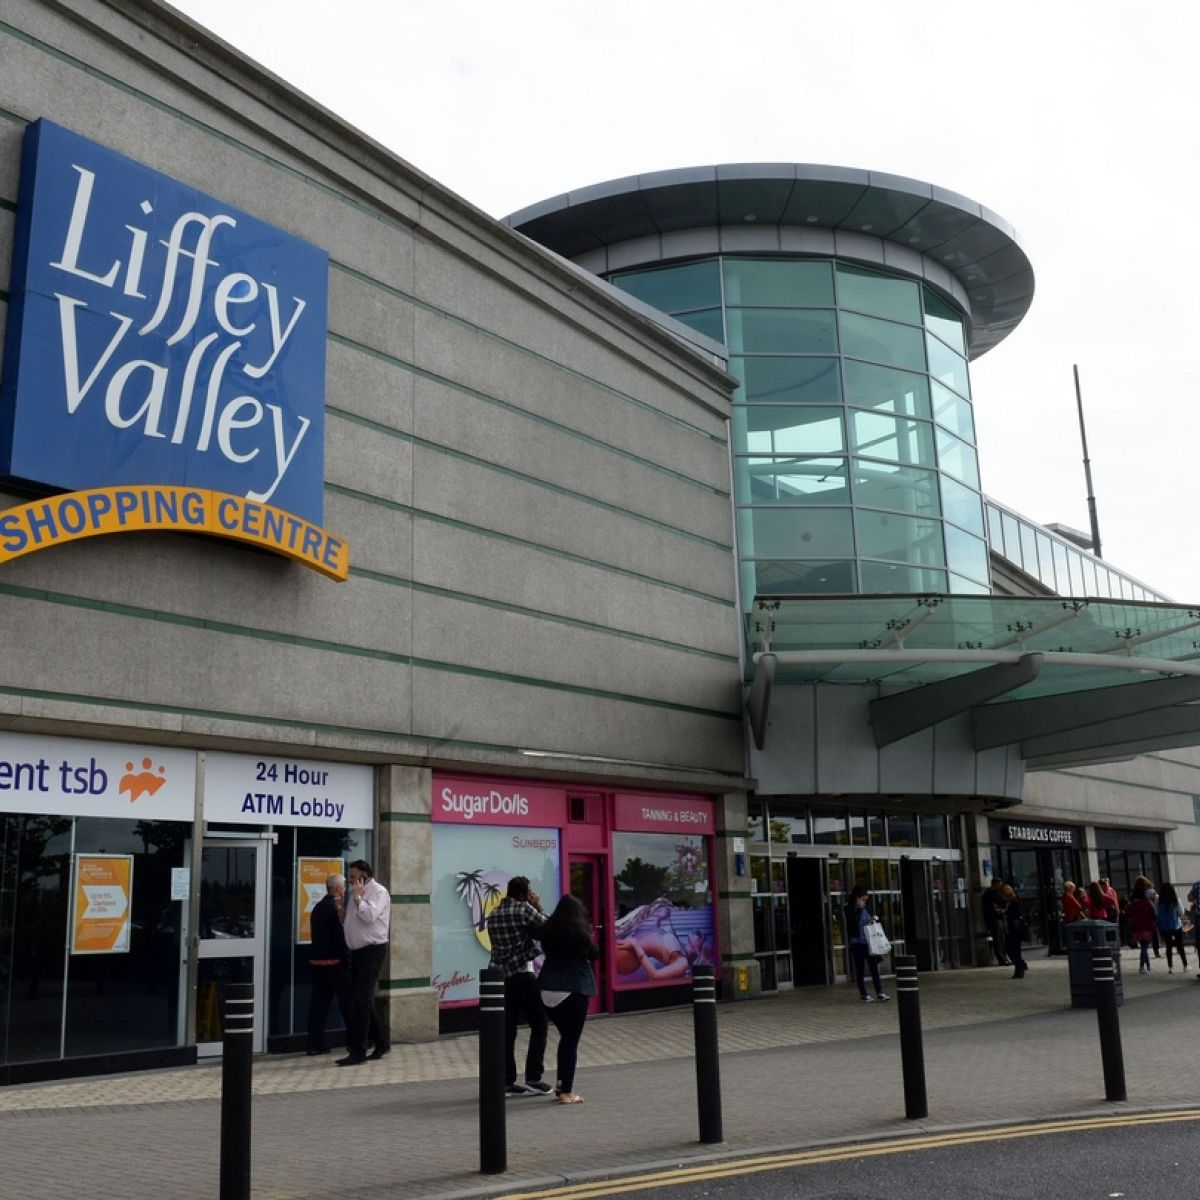 An Muileann gCearr to Liffey Valley - 4 ways to travel via train